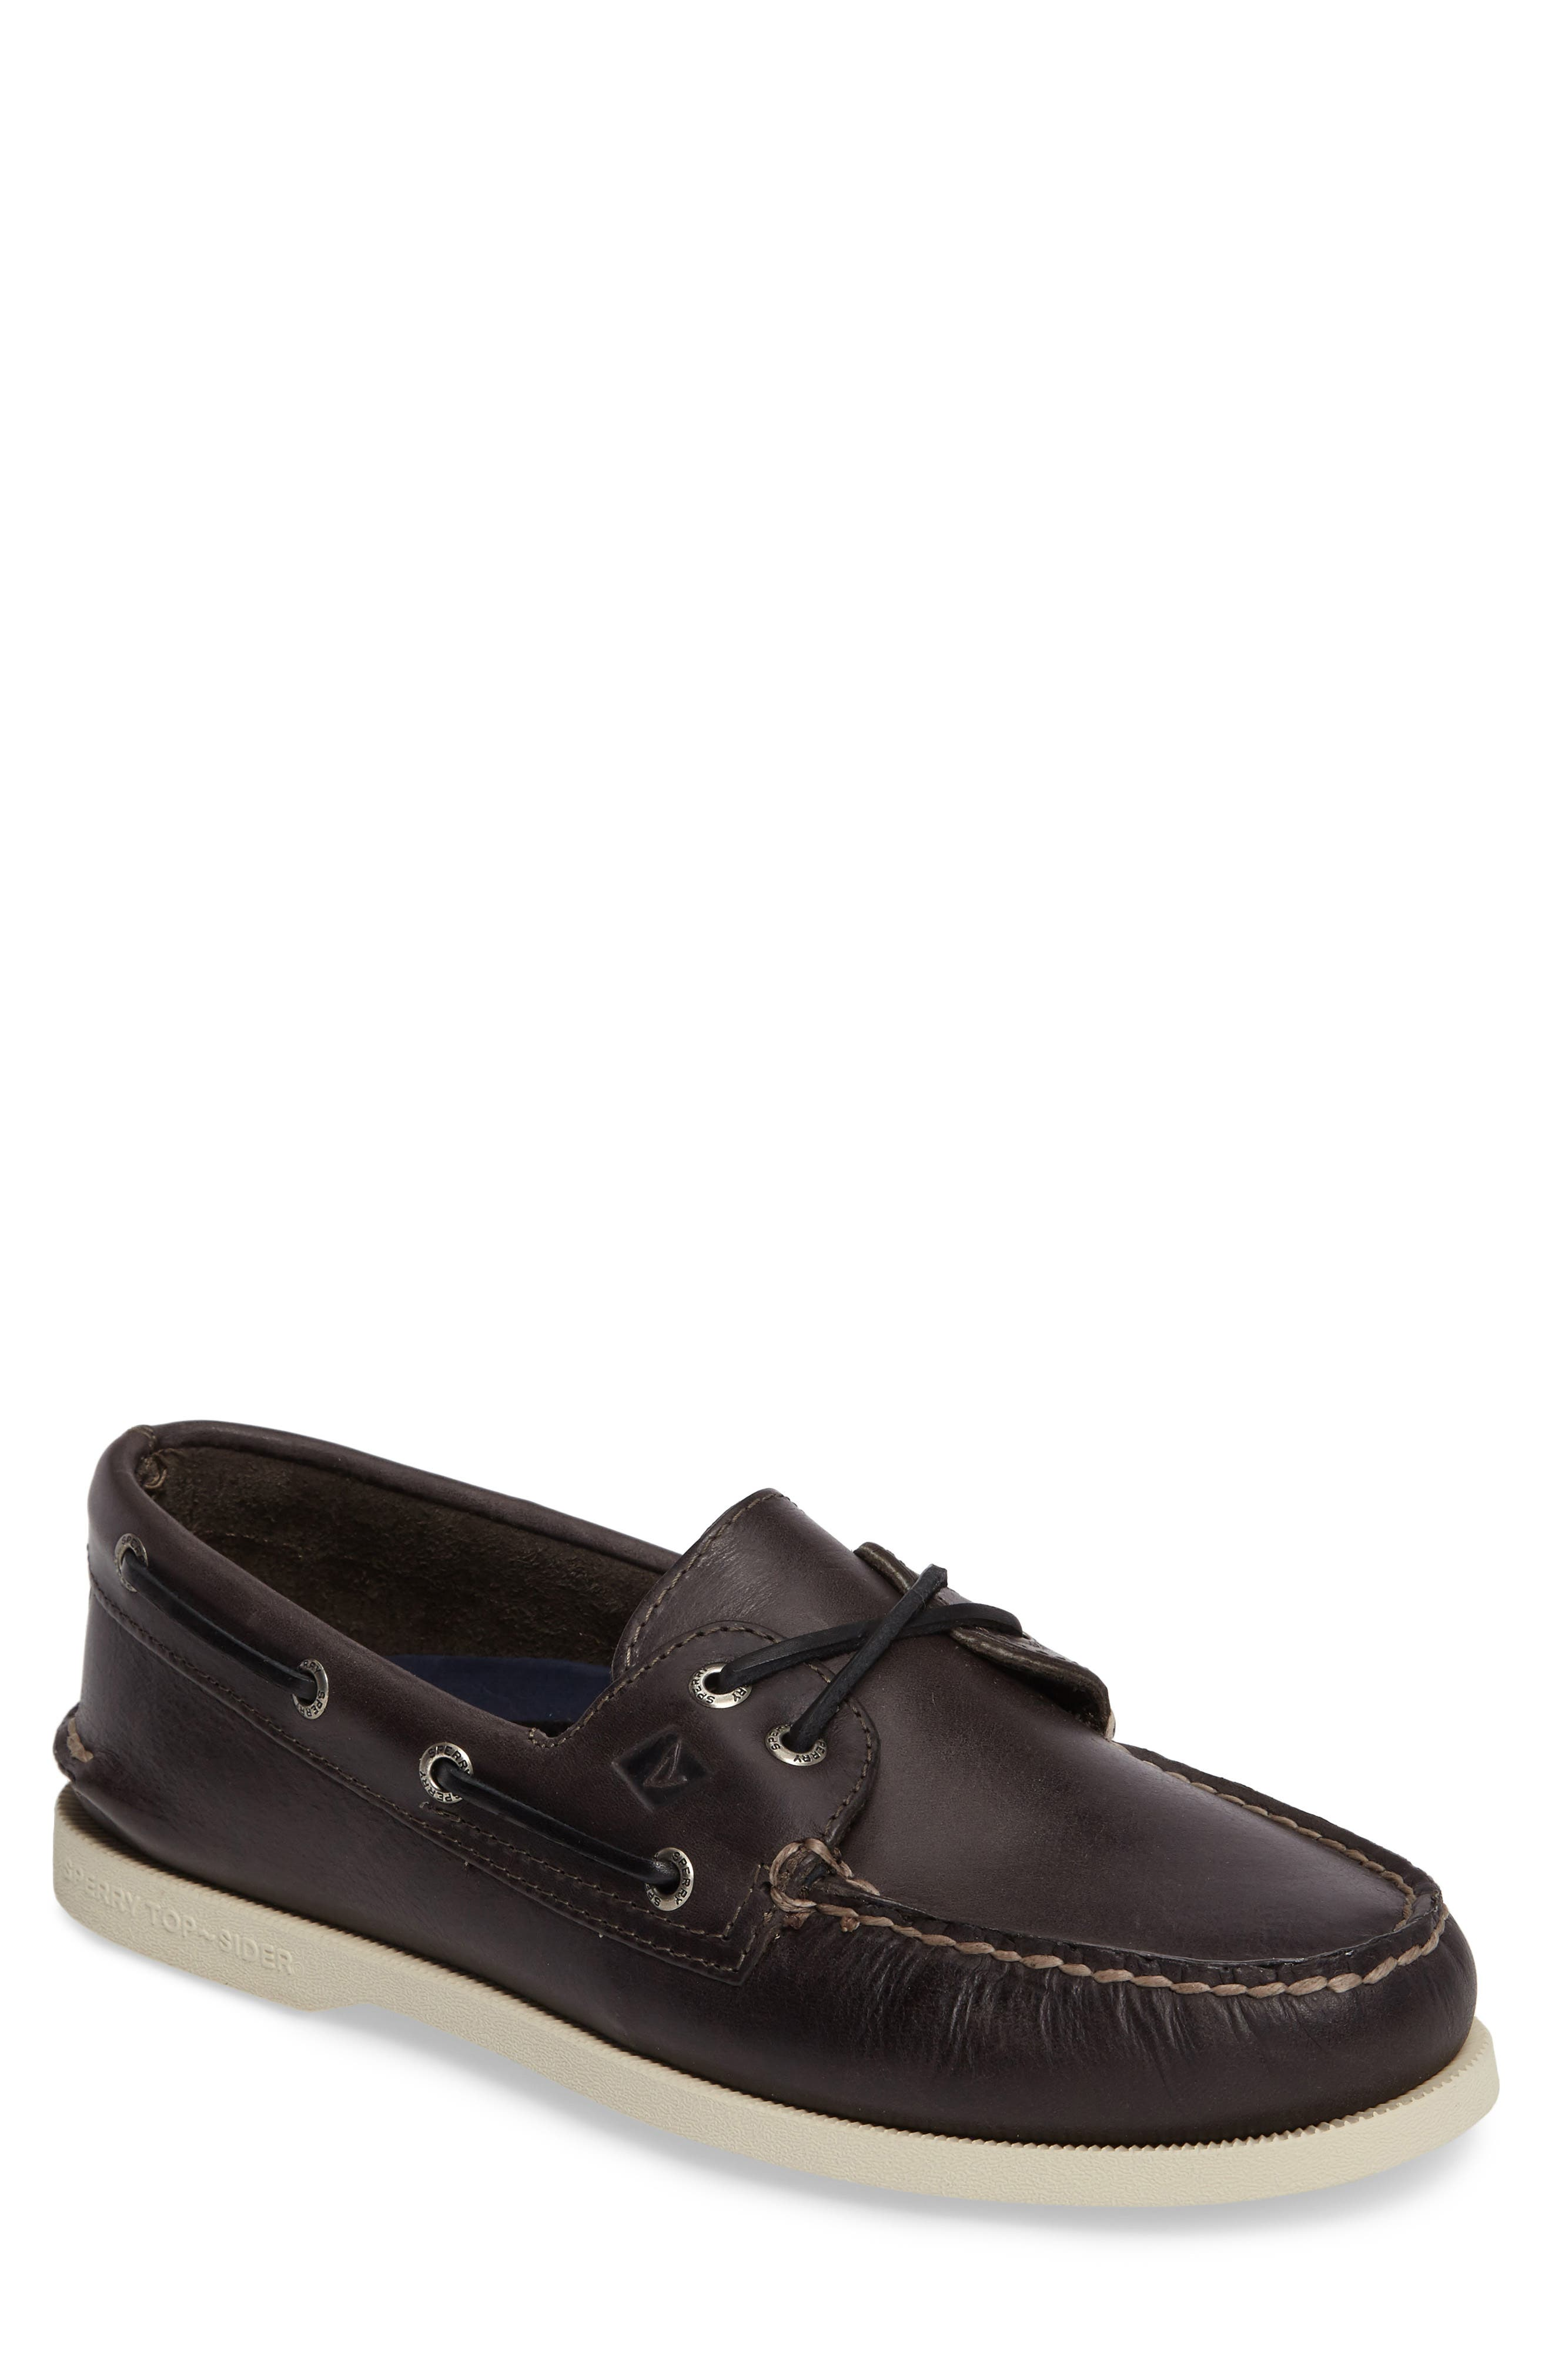 Authentic Original Boat Shoe,                             Main thumbnail 1, color,                             021